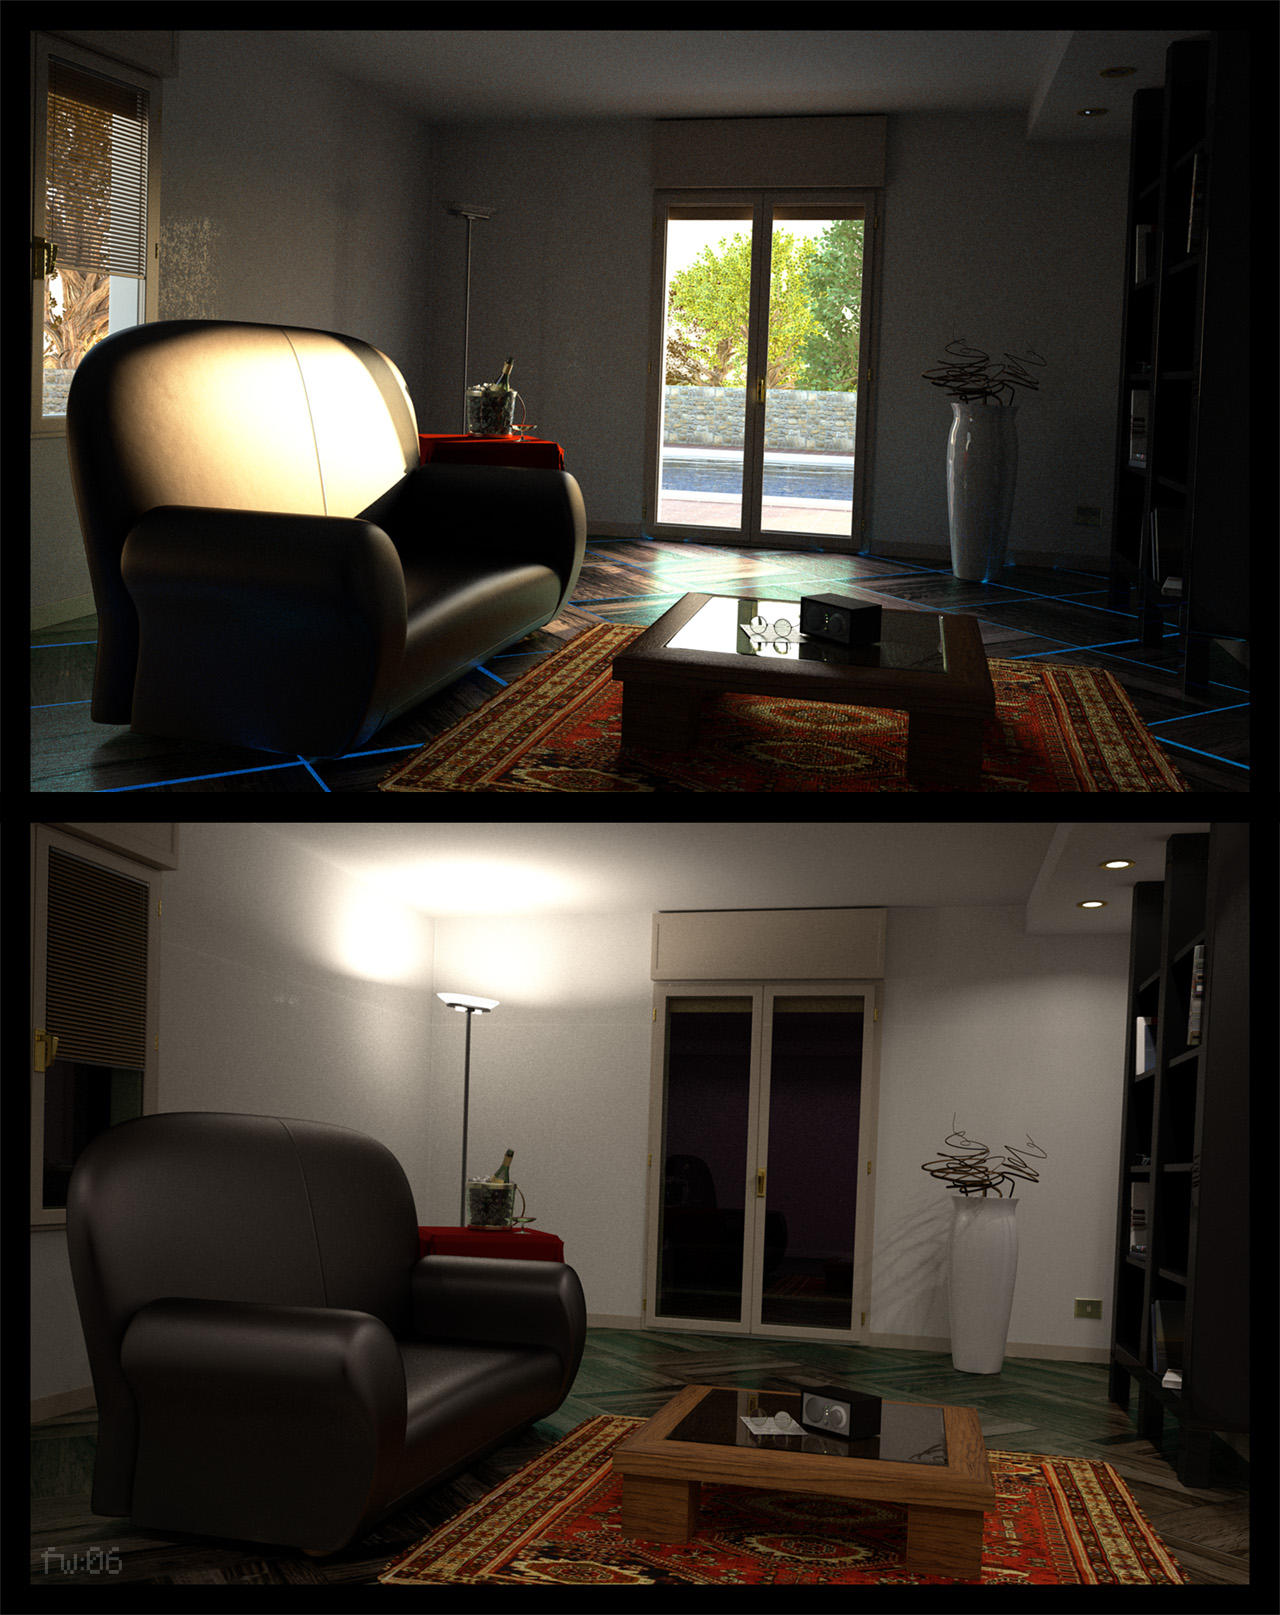 room: day+night by freewally on DeviantArt